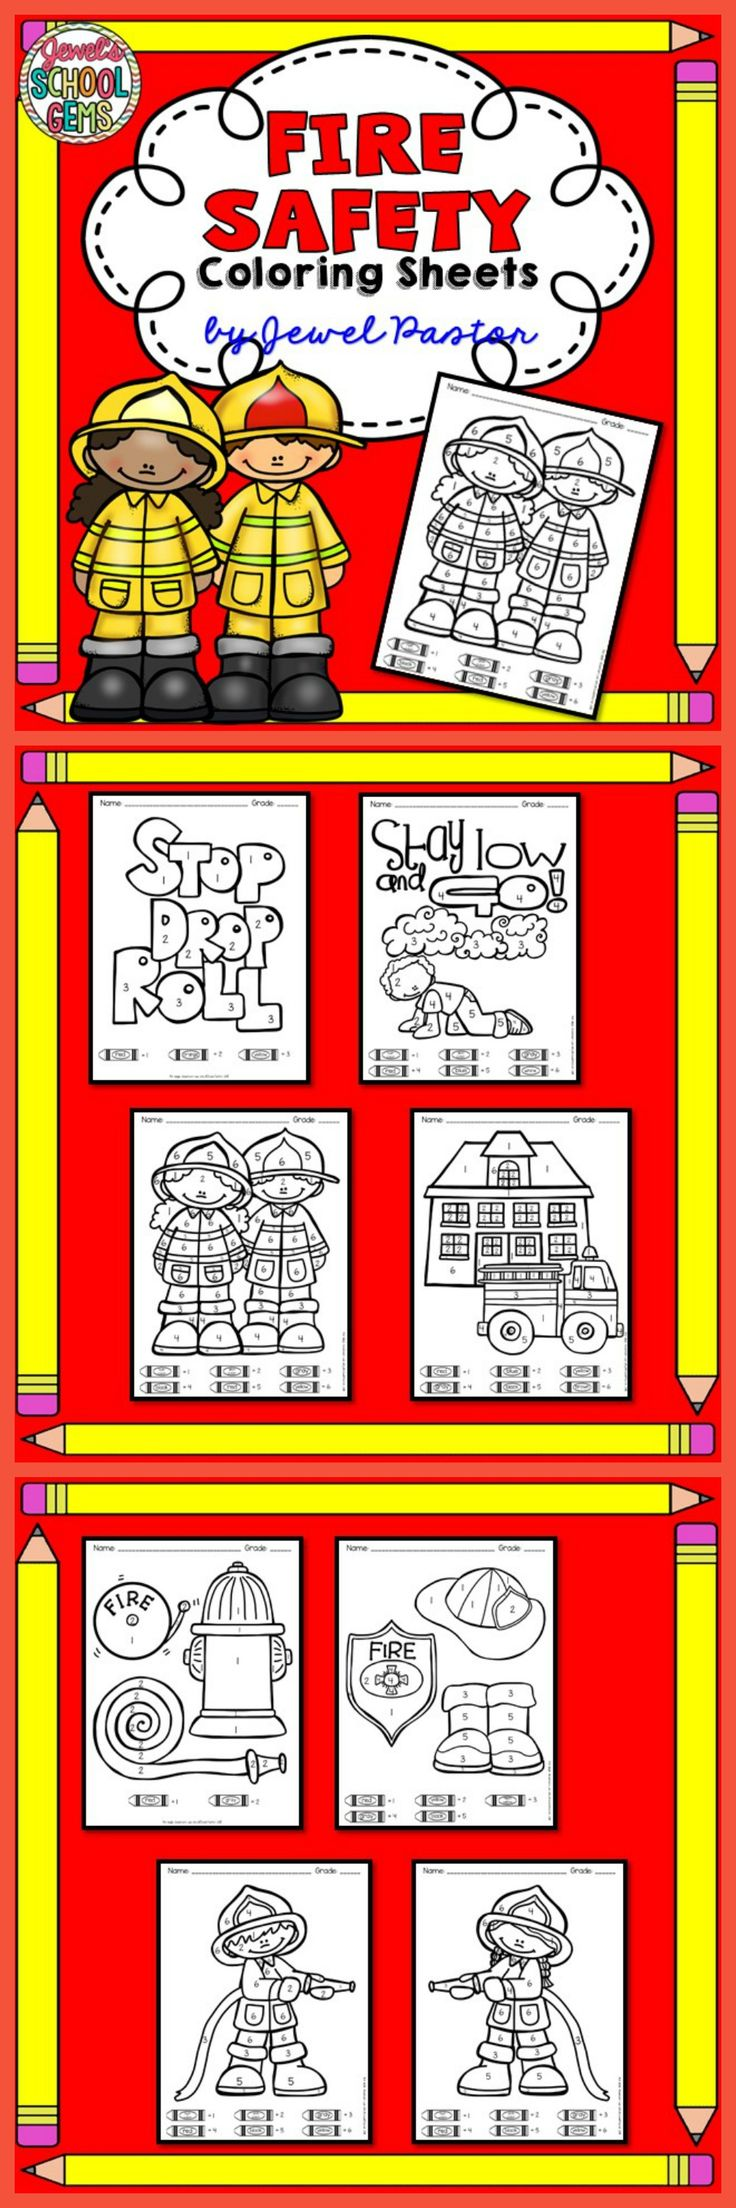 """Fire Safety  """"Fire Safety Coloring Sheets"""" is the perfect activity for your students this Fire Safety Week. Just print the sheets and you are ready to go! Please see Preview to see all 8 sheets you are getting."""